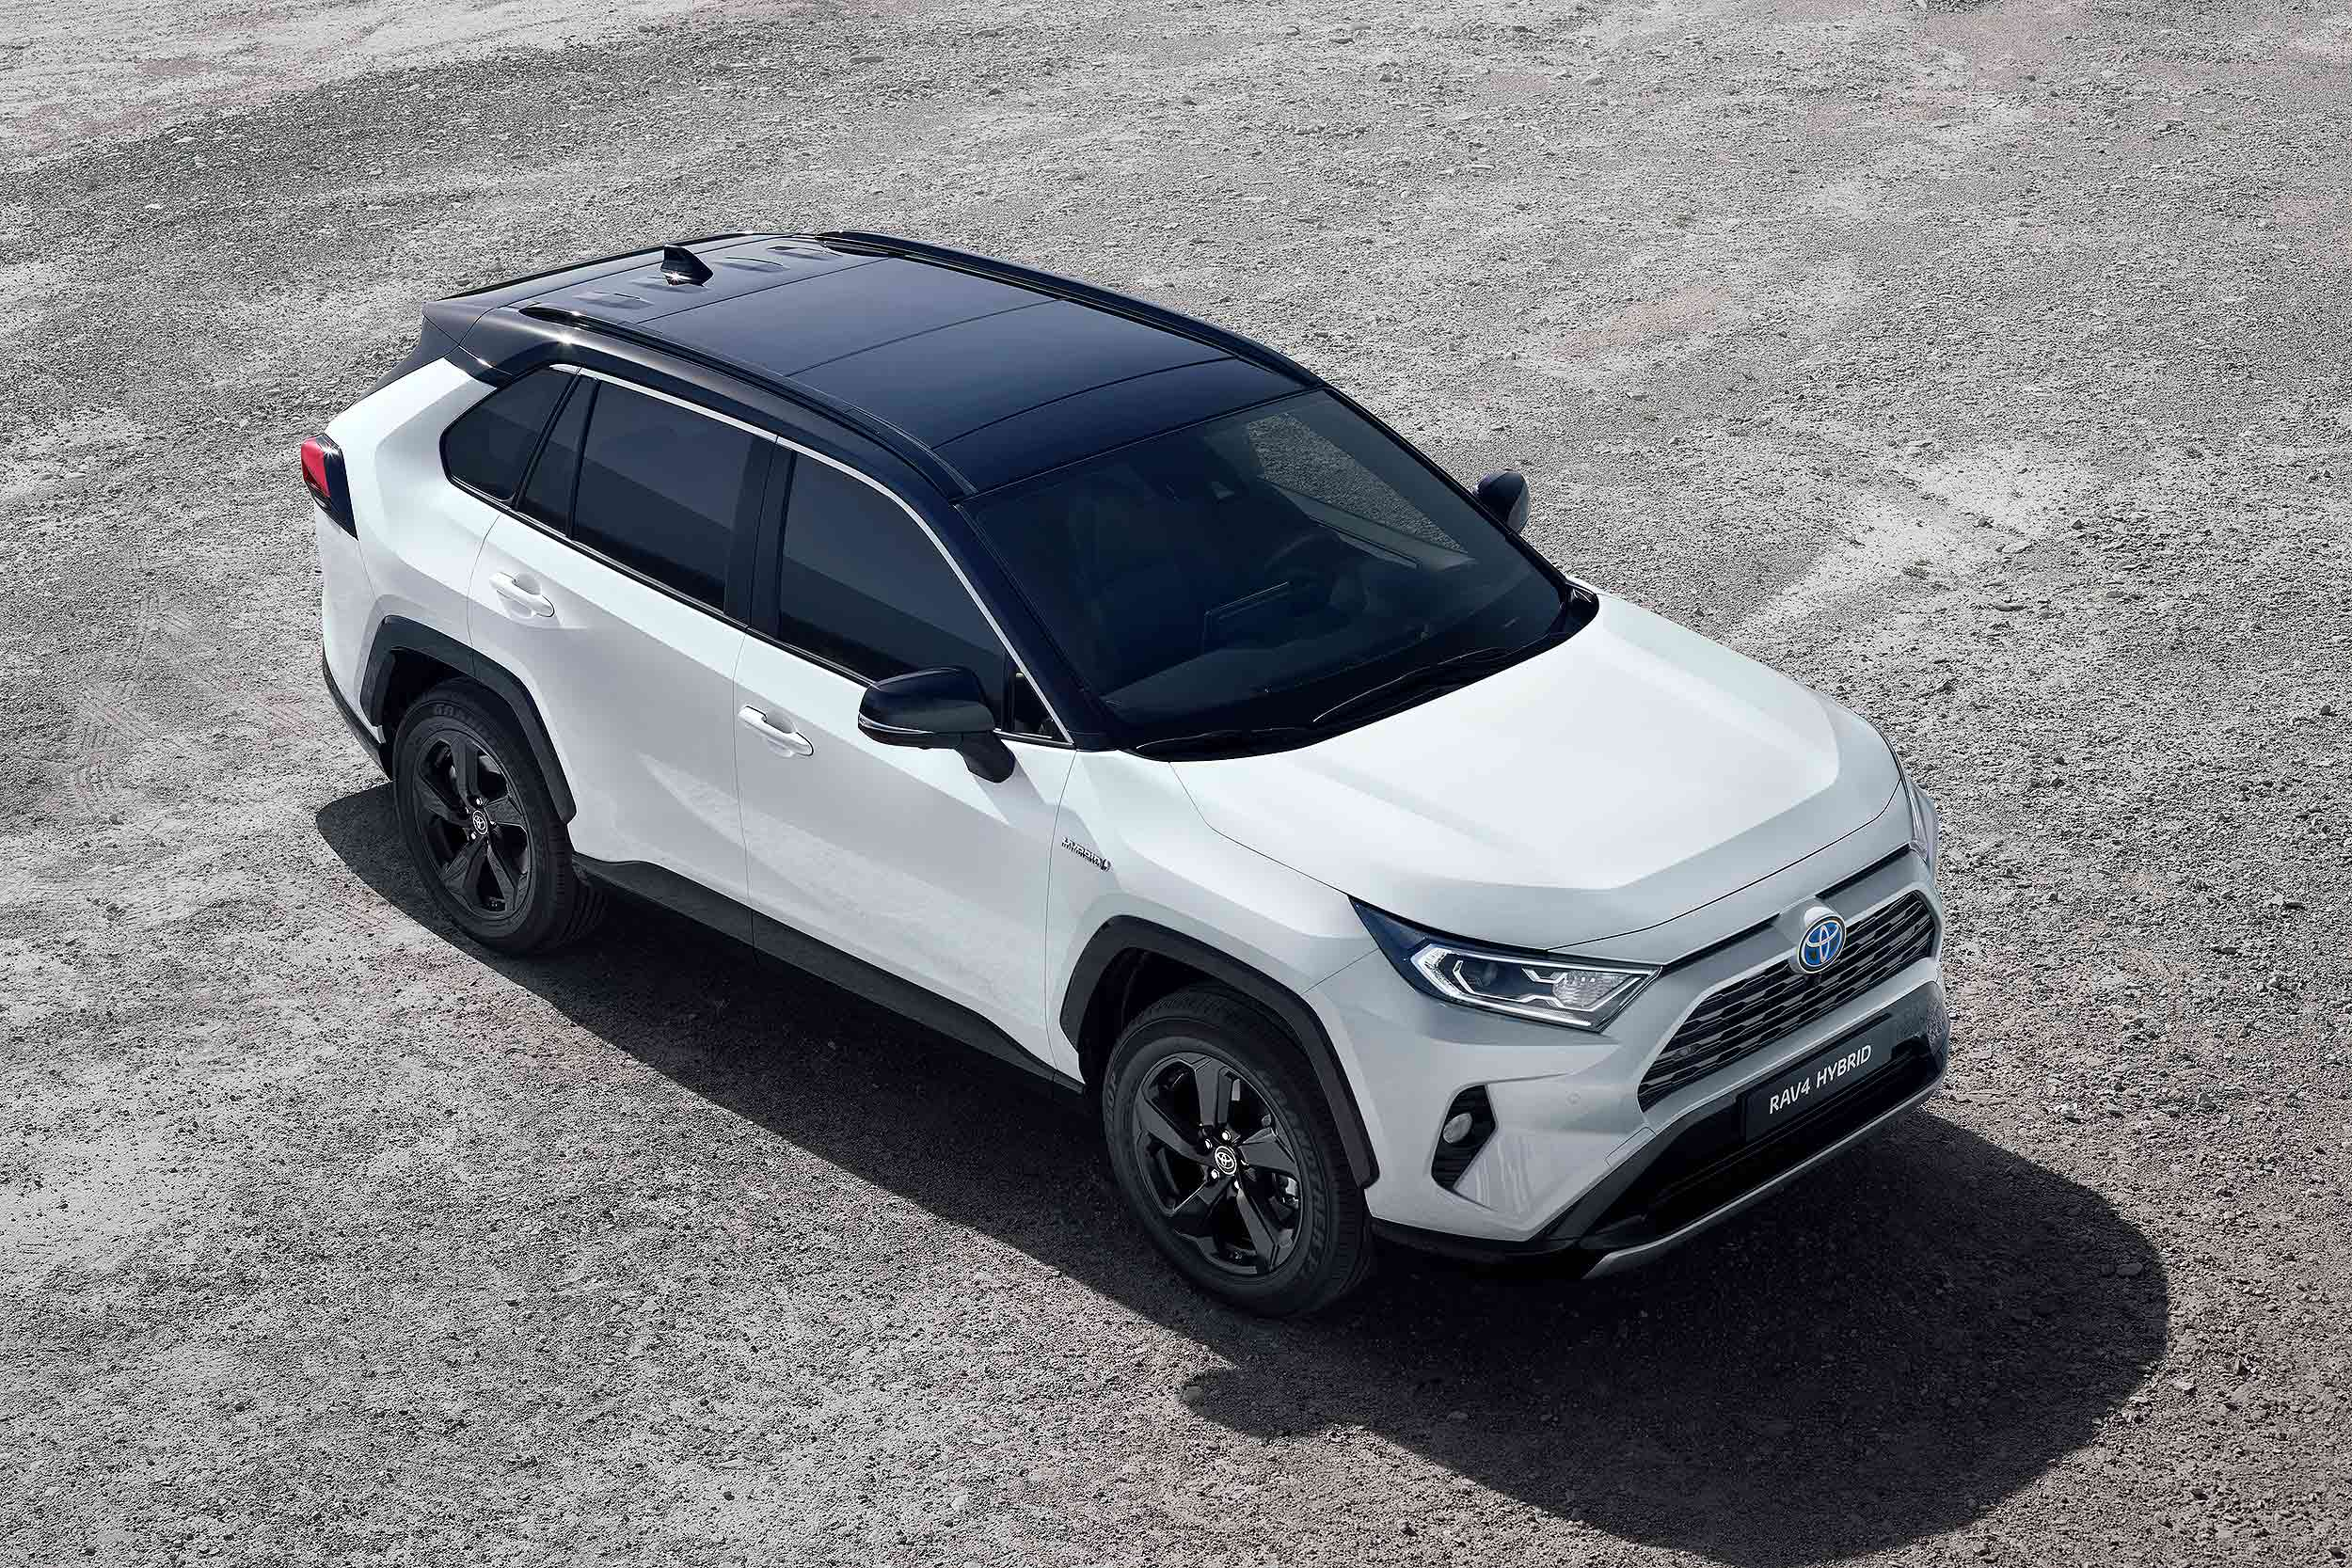 52 Best Review New La Toyota 2019 Specs Price for New La Toyota 2019 Specs